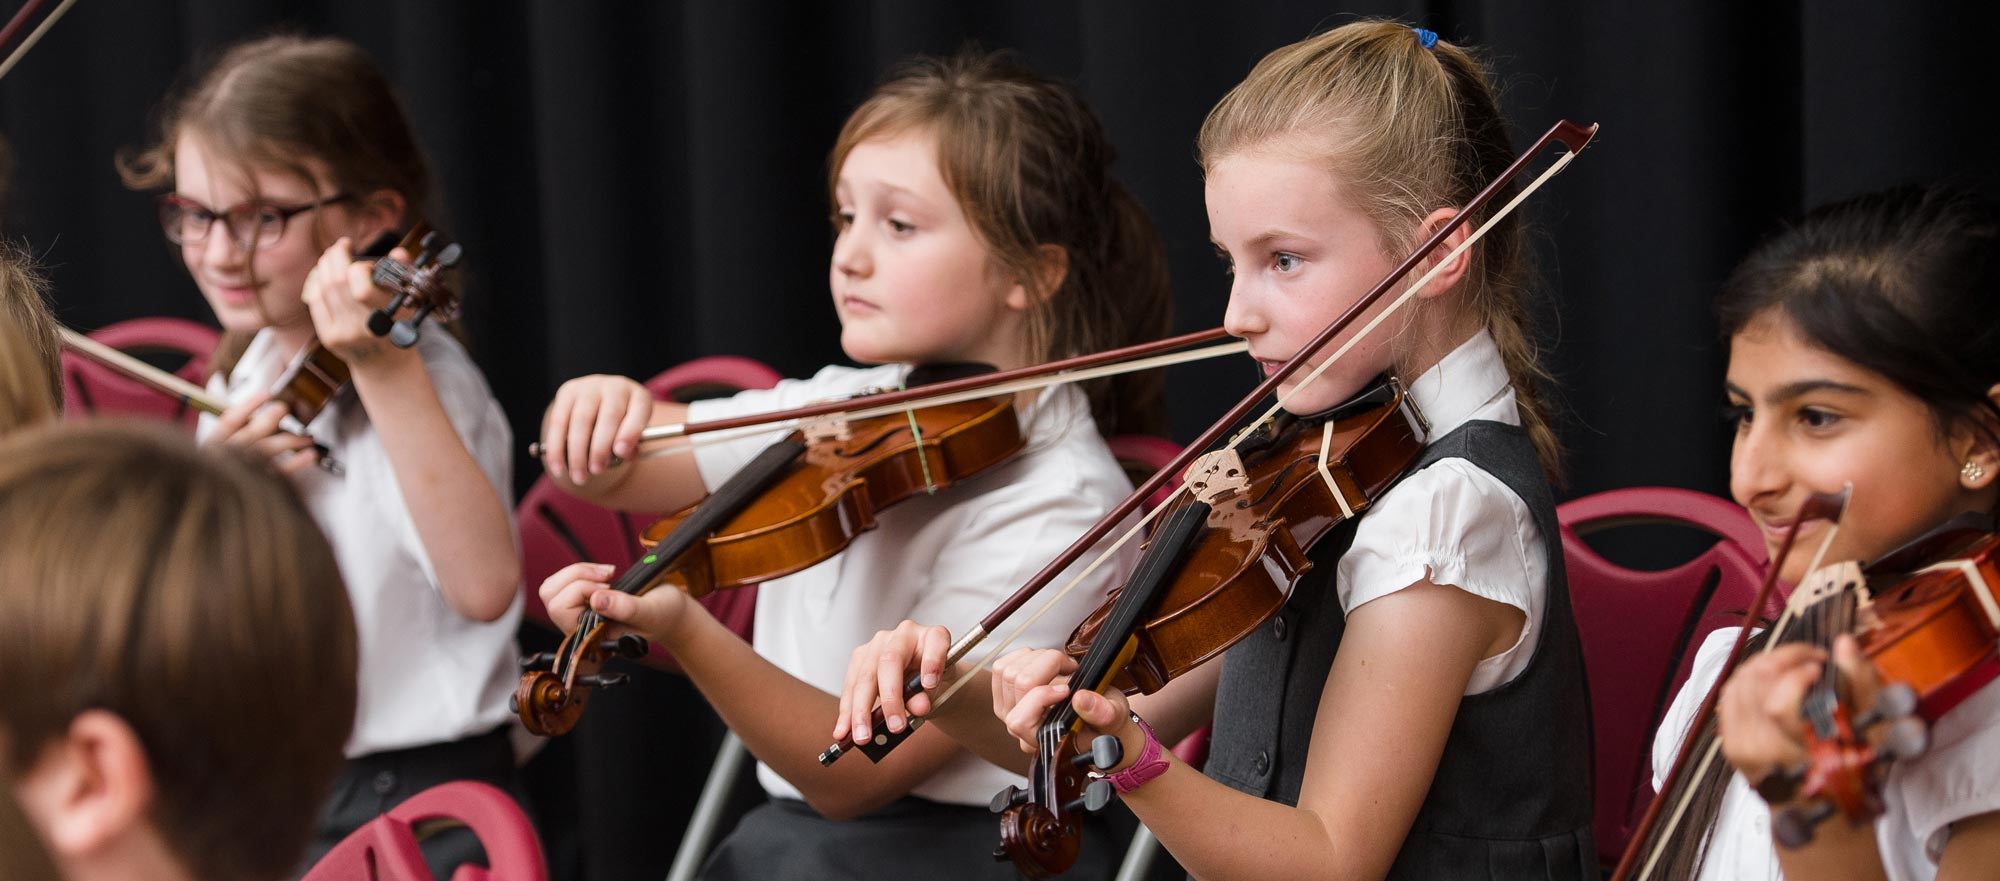 Girls playing the violin